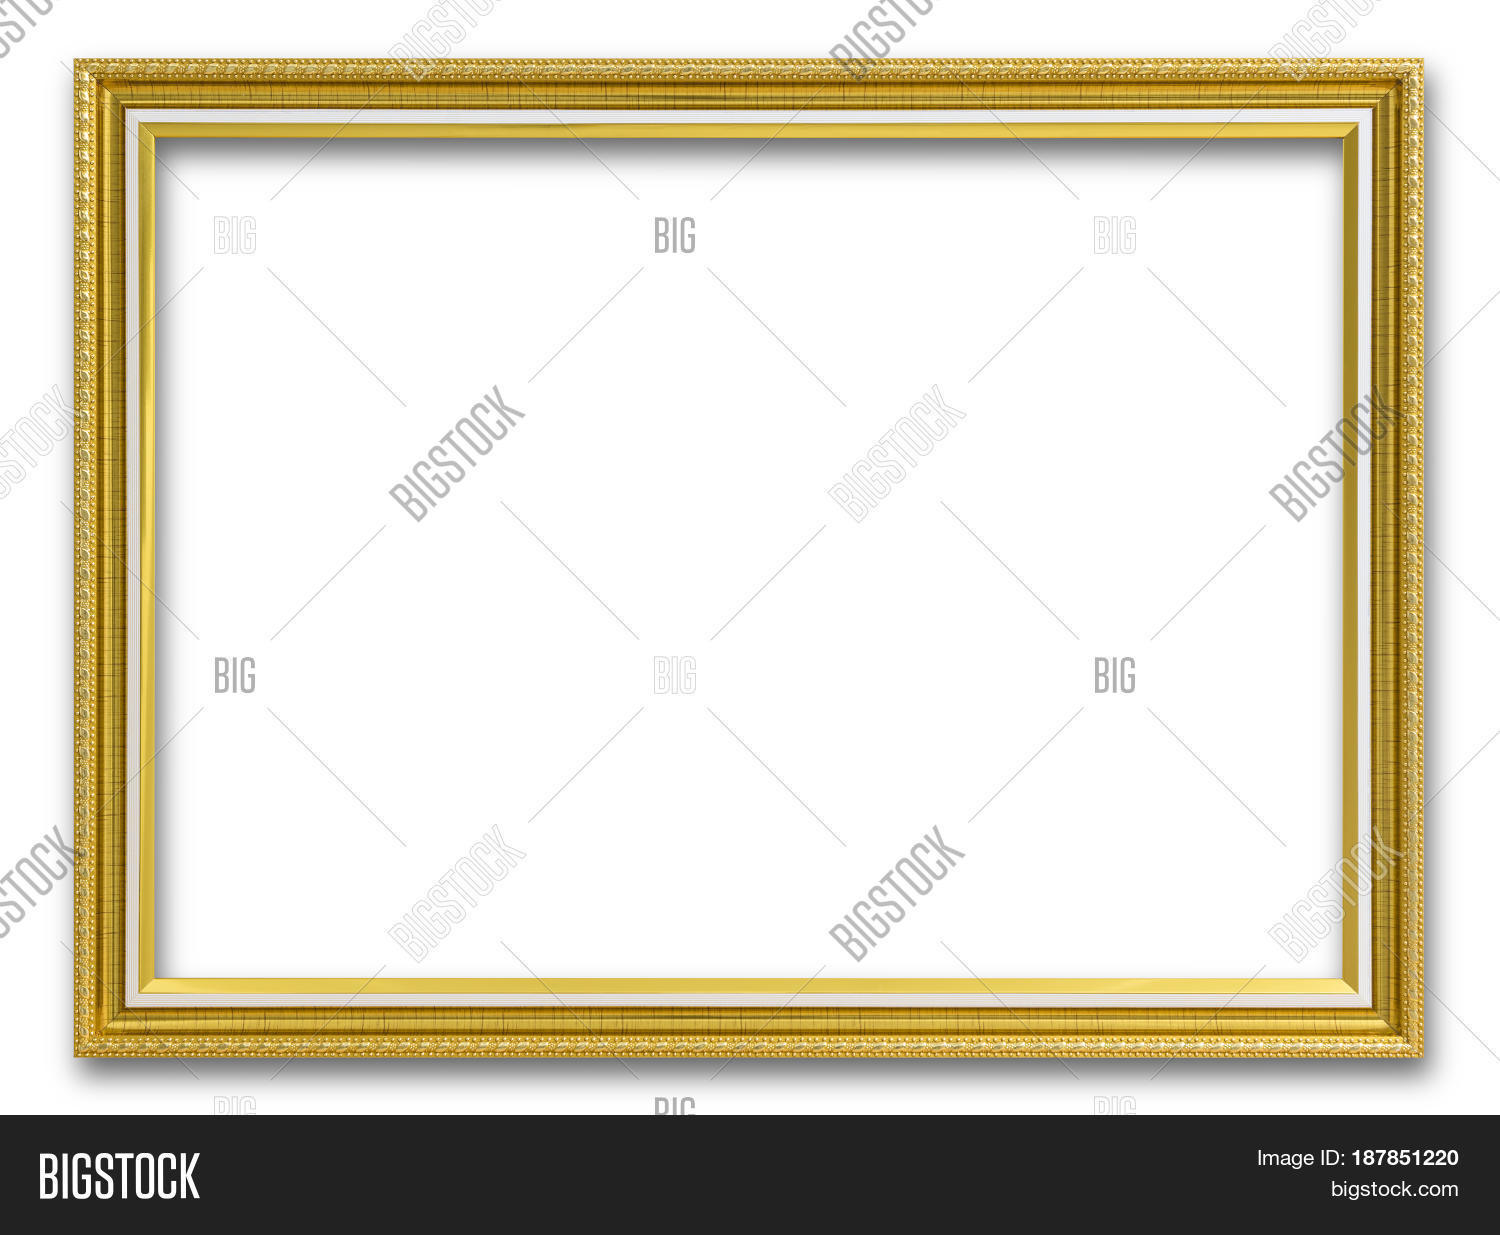 Gold Wooden Frame Image & Photo (Free Trial) | Bigstock